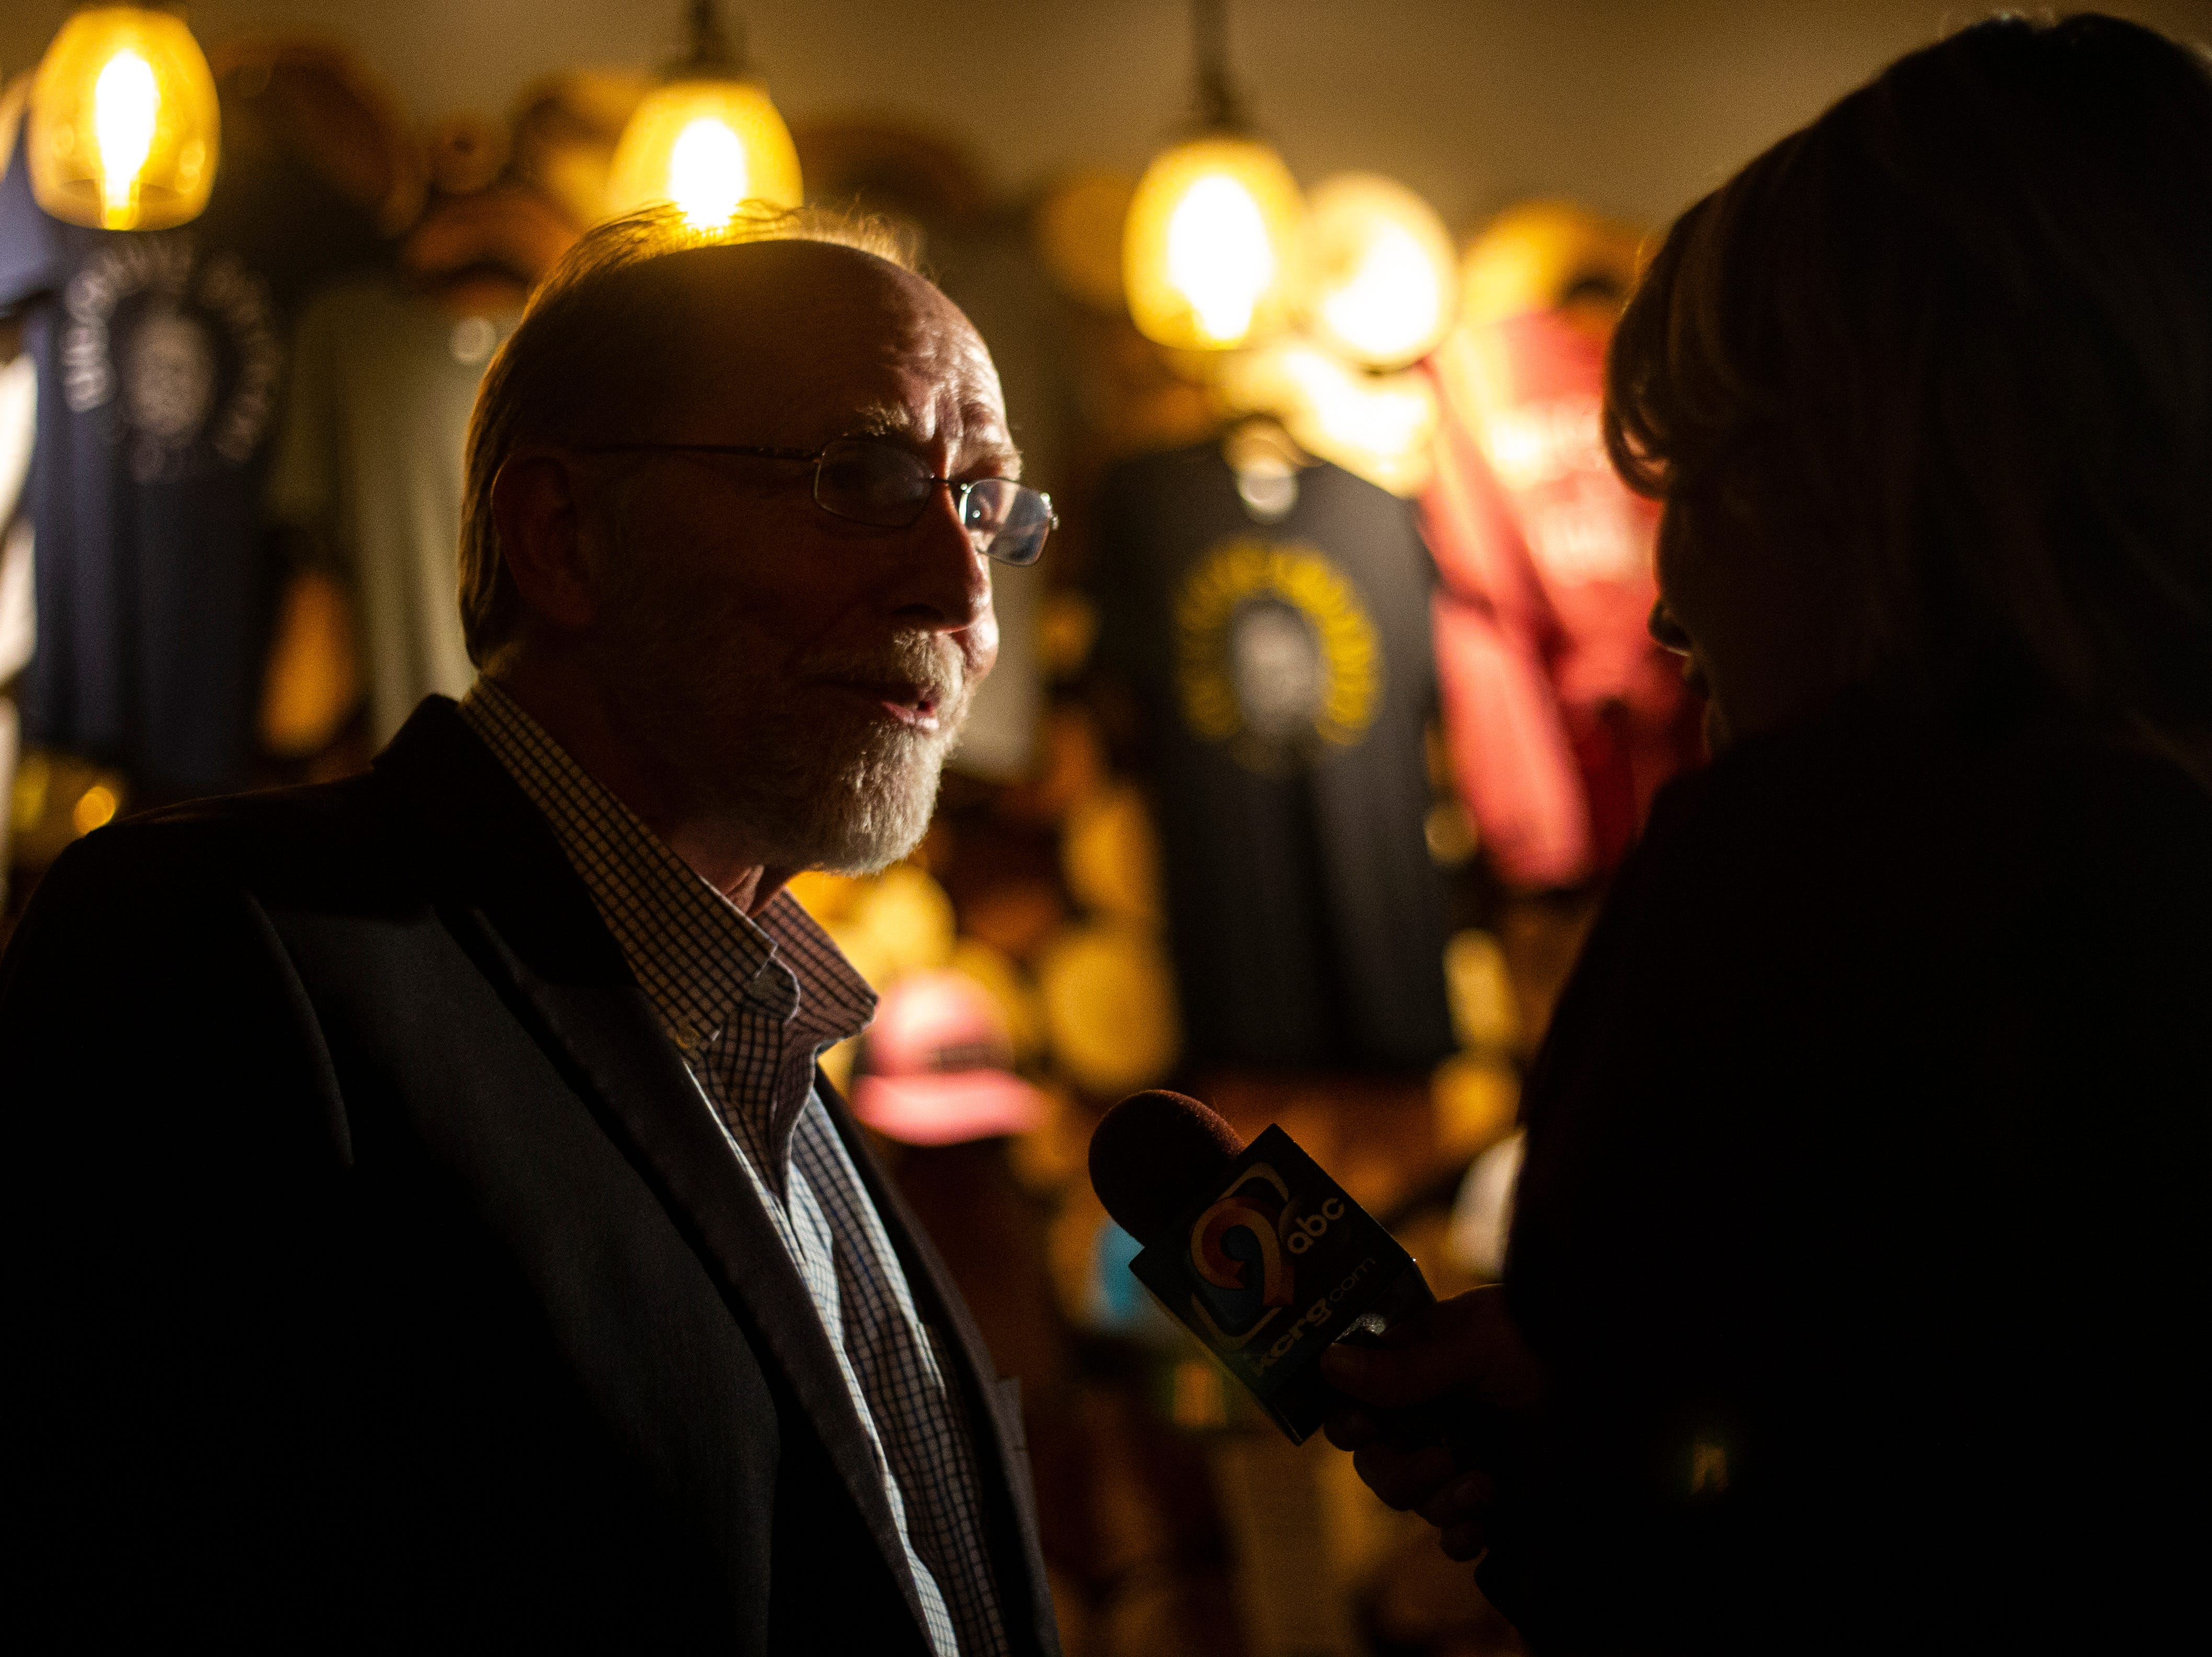 U.S. Rep. Dave Loebsack, D-Iowa, speaks with a reporter during the Johnson County Democrats watch party on Tuesday, Nov. 6, 2018, at Big Grove Brewery in Iowa City.